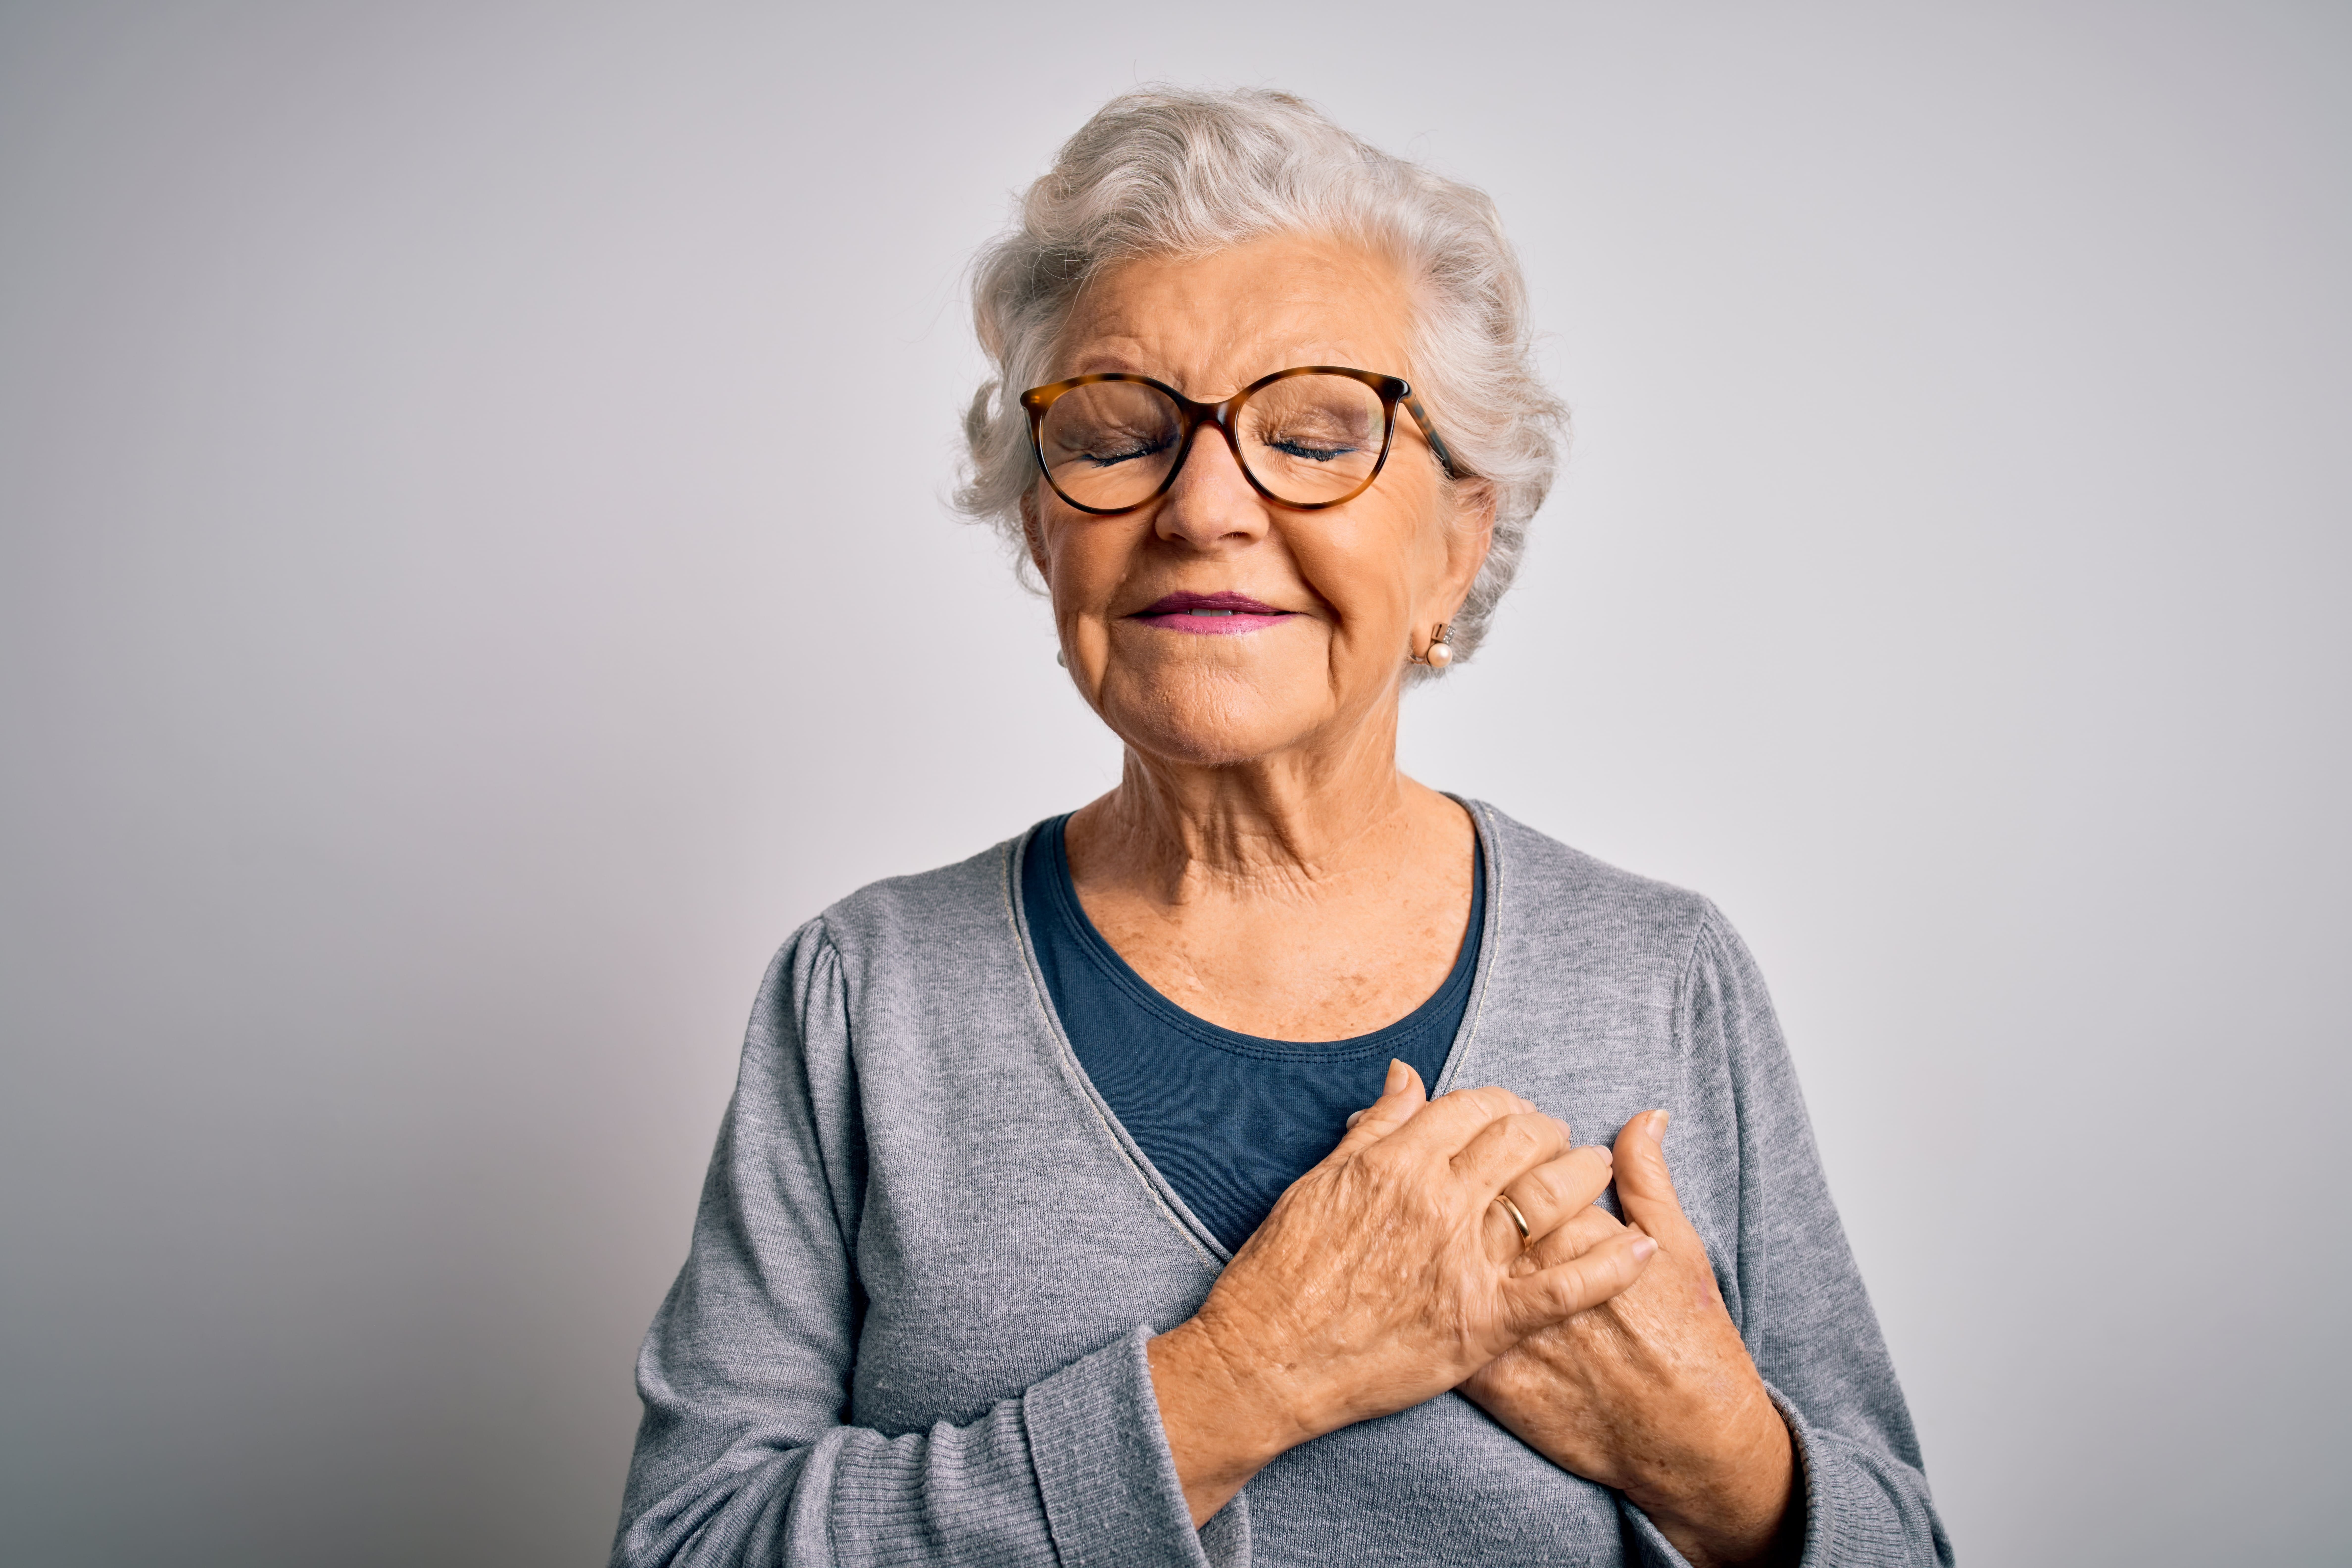 Senior Heart Health: 5 Things to Know